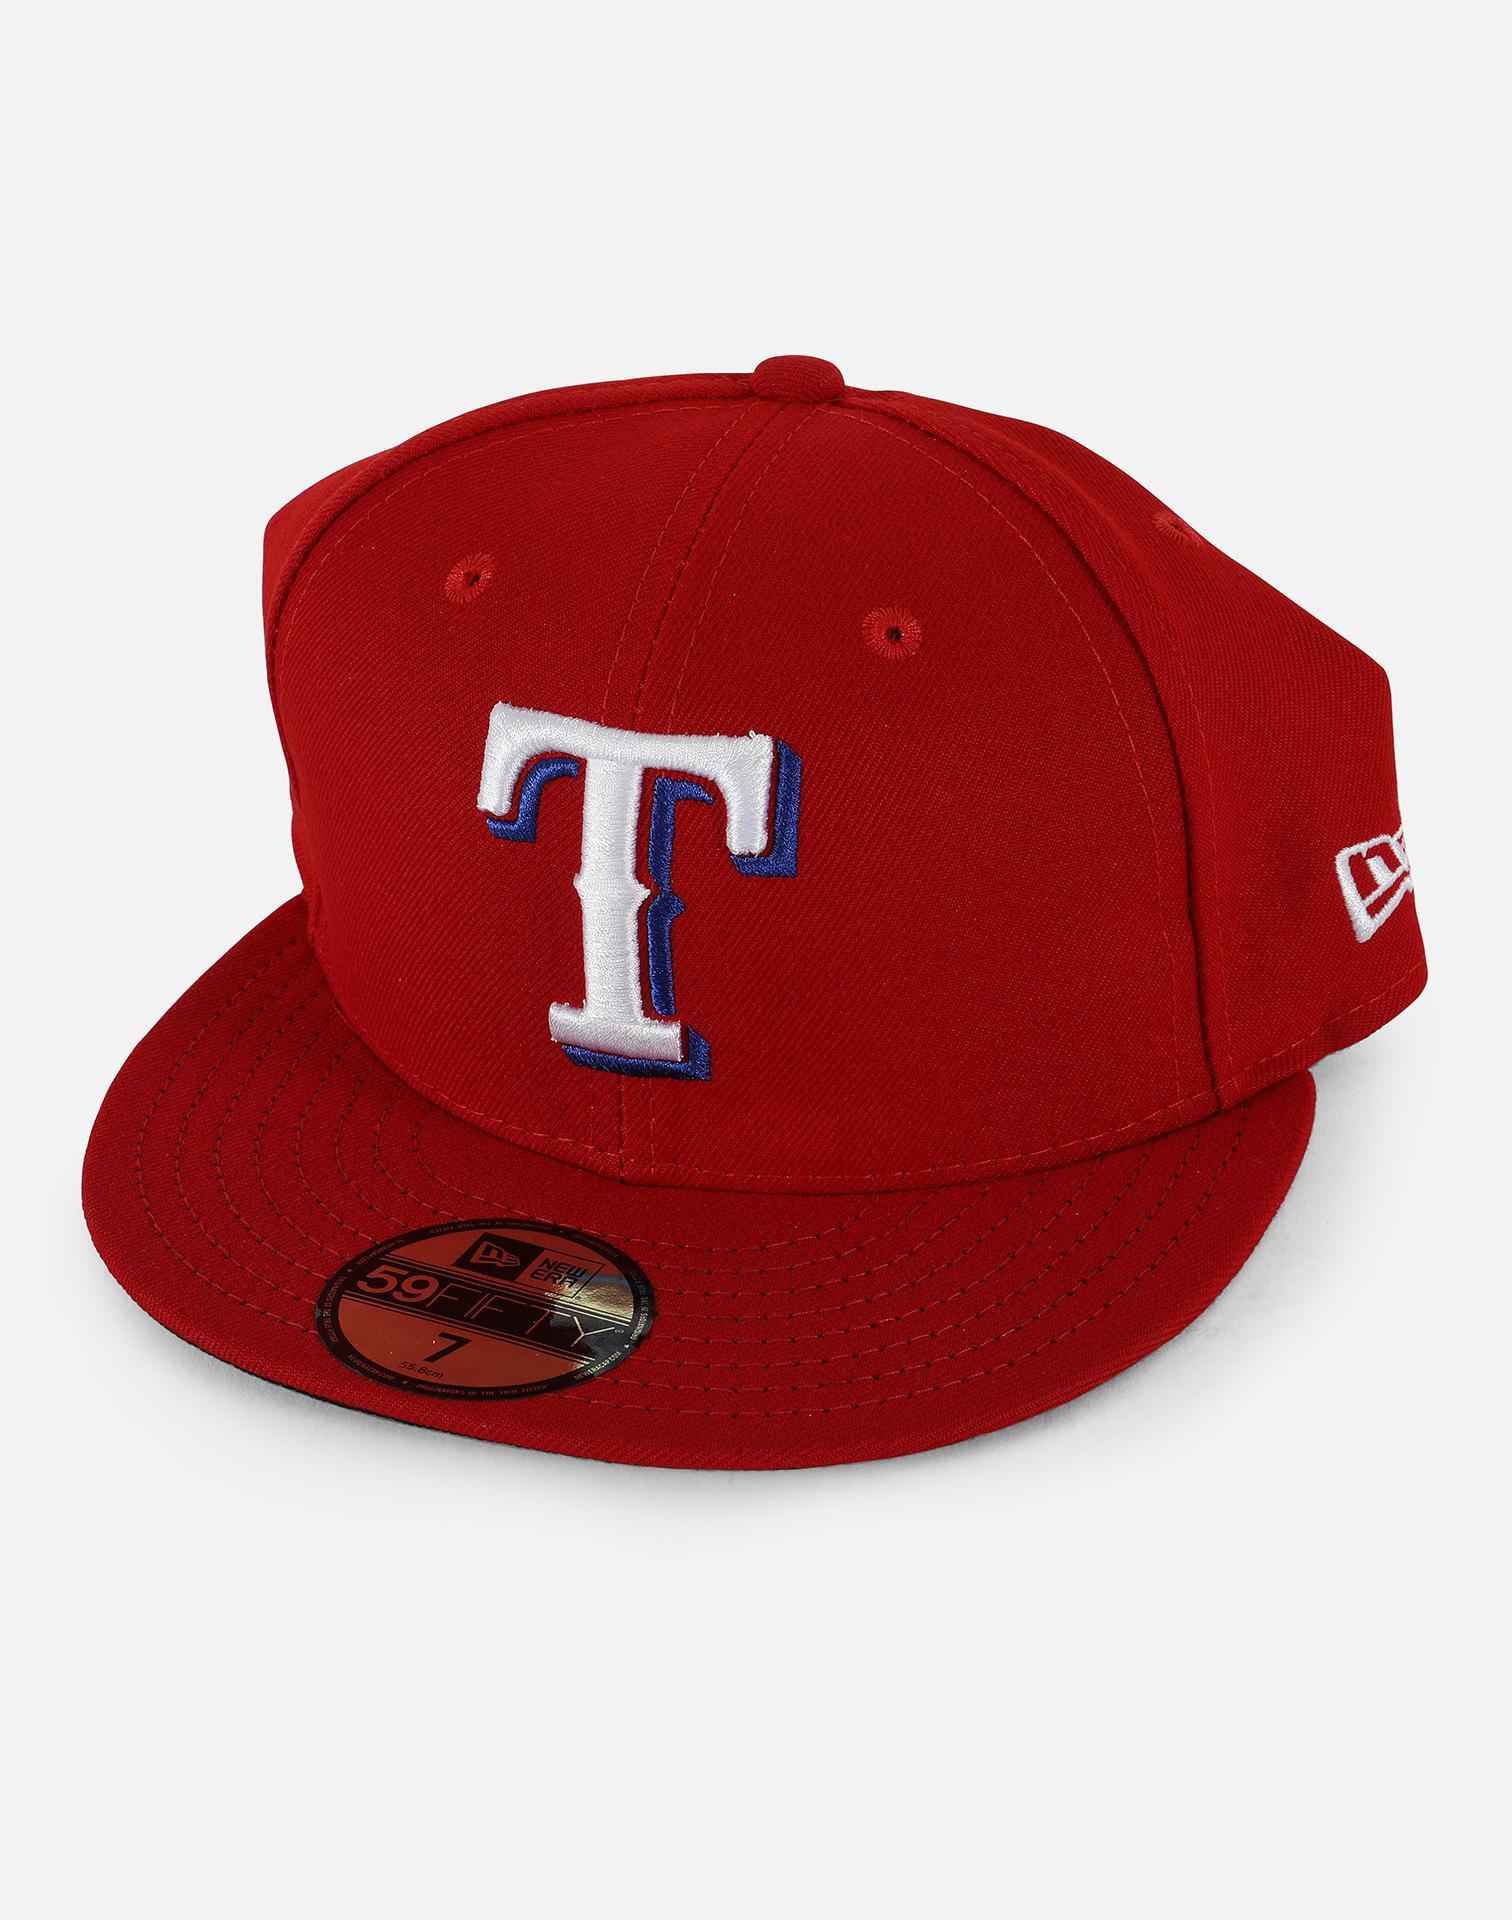 new styles 13484 d00fb ... new era 59fifty fitted hats and caps id815660 a23dd 94382  low cost  ktz. mens red mlb texas rangers alternative fitted hat f0266 8cdbd